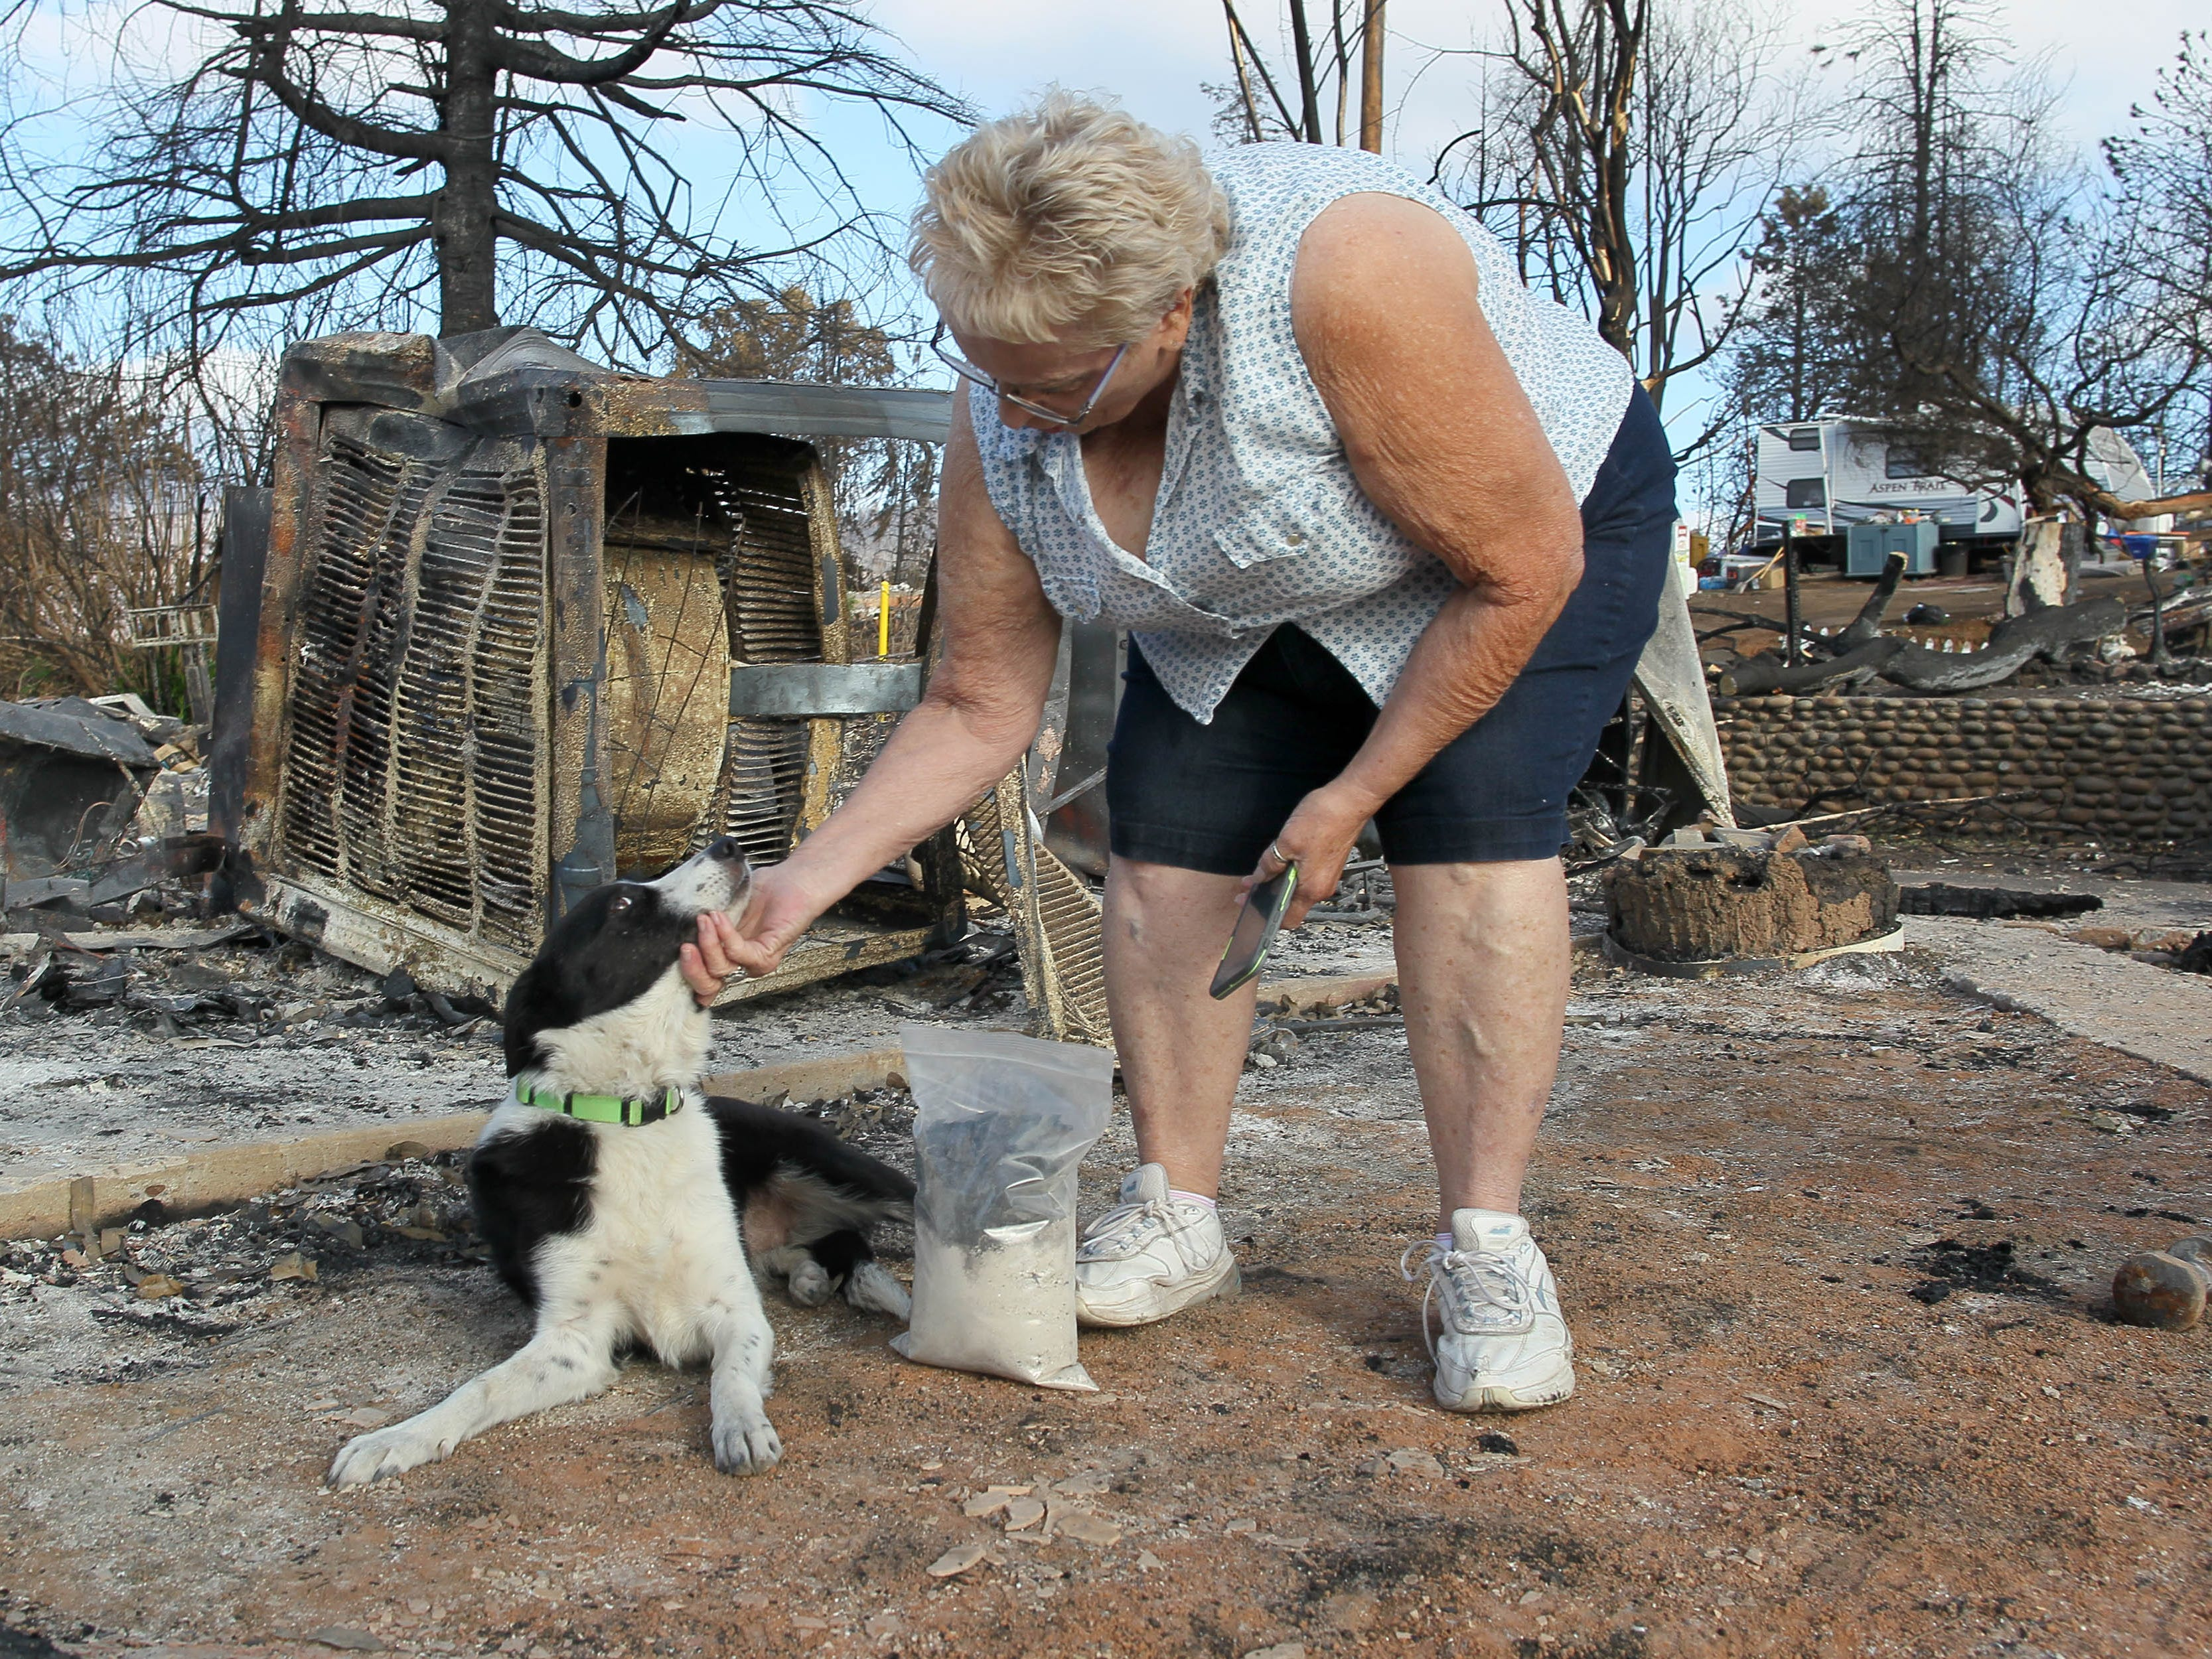 Bonnie Martin gave Piper a pat as thank you for helping locate cremains on her burned-down home in Keswick on Saturday, Sept. 29, 2018. (Hung T. Vu/Special to the Record Searchlight)